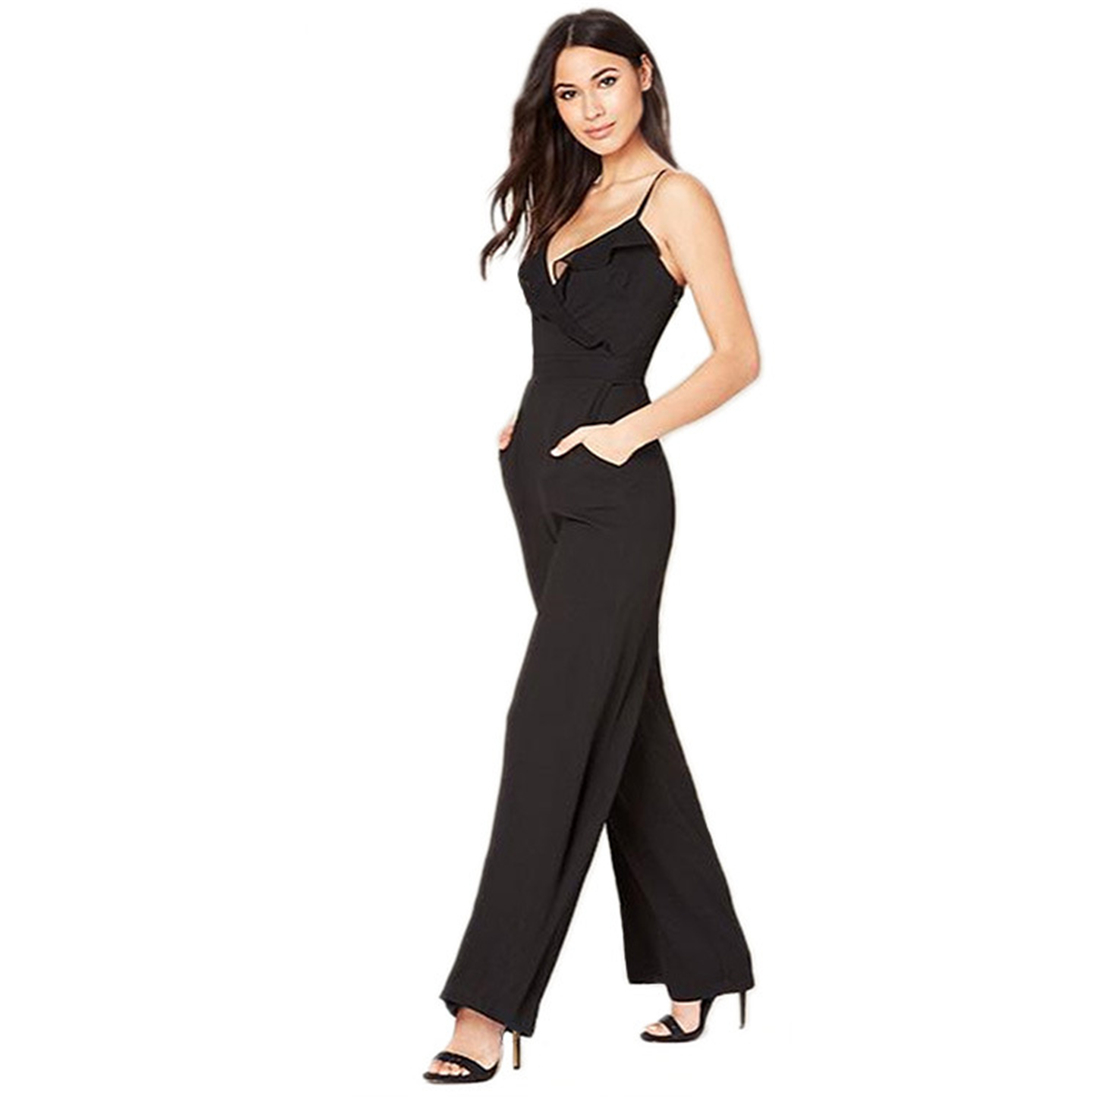 784fccb71c0622 With Double Pockets Elegant Office Jumpsuits V-Neck Spaghetti Strap Summer  Overalls for Women Black Rompers Sexy Wide Leg Pants